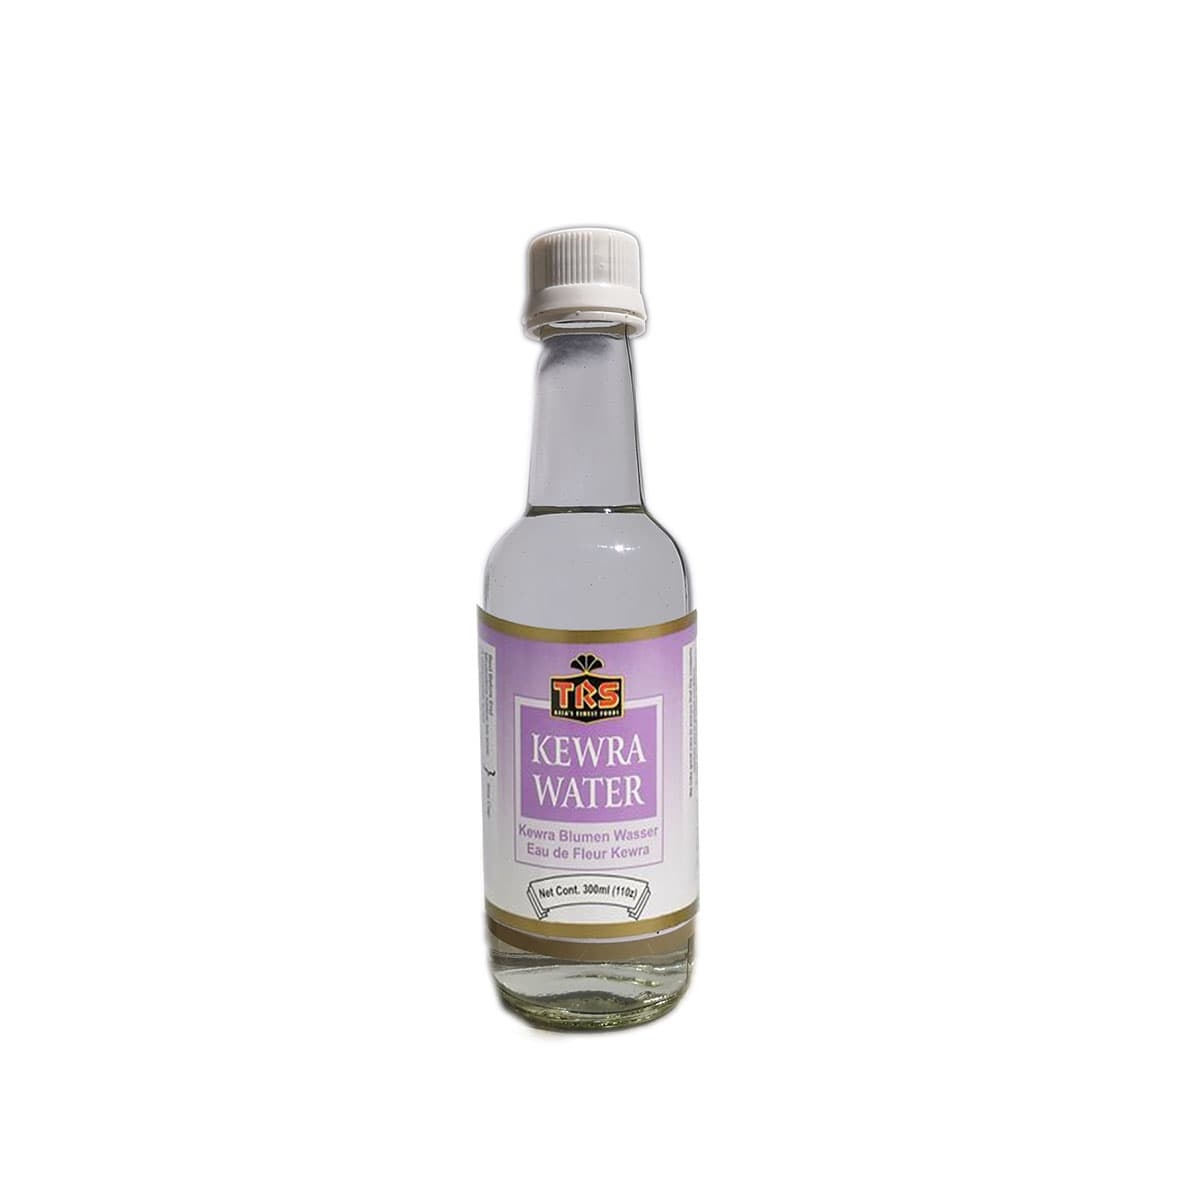 Kewra water - acqua di pandan 190ml di Ktc